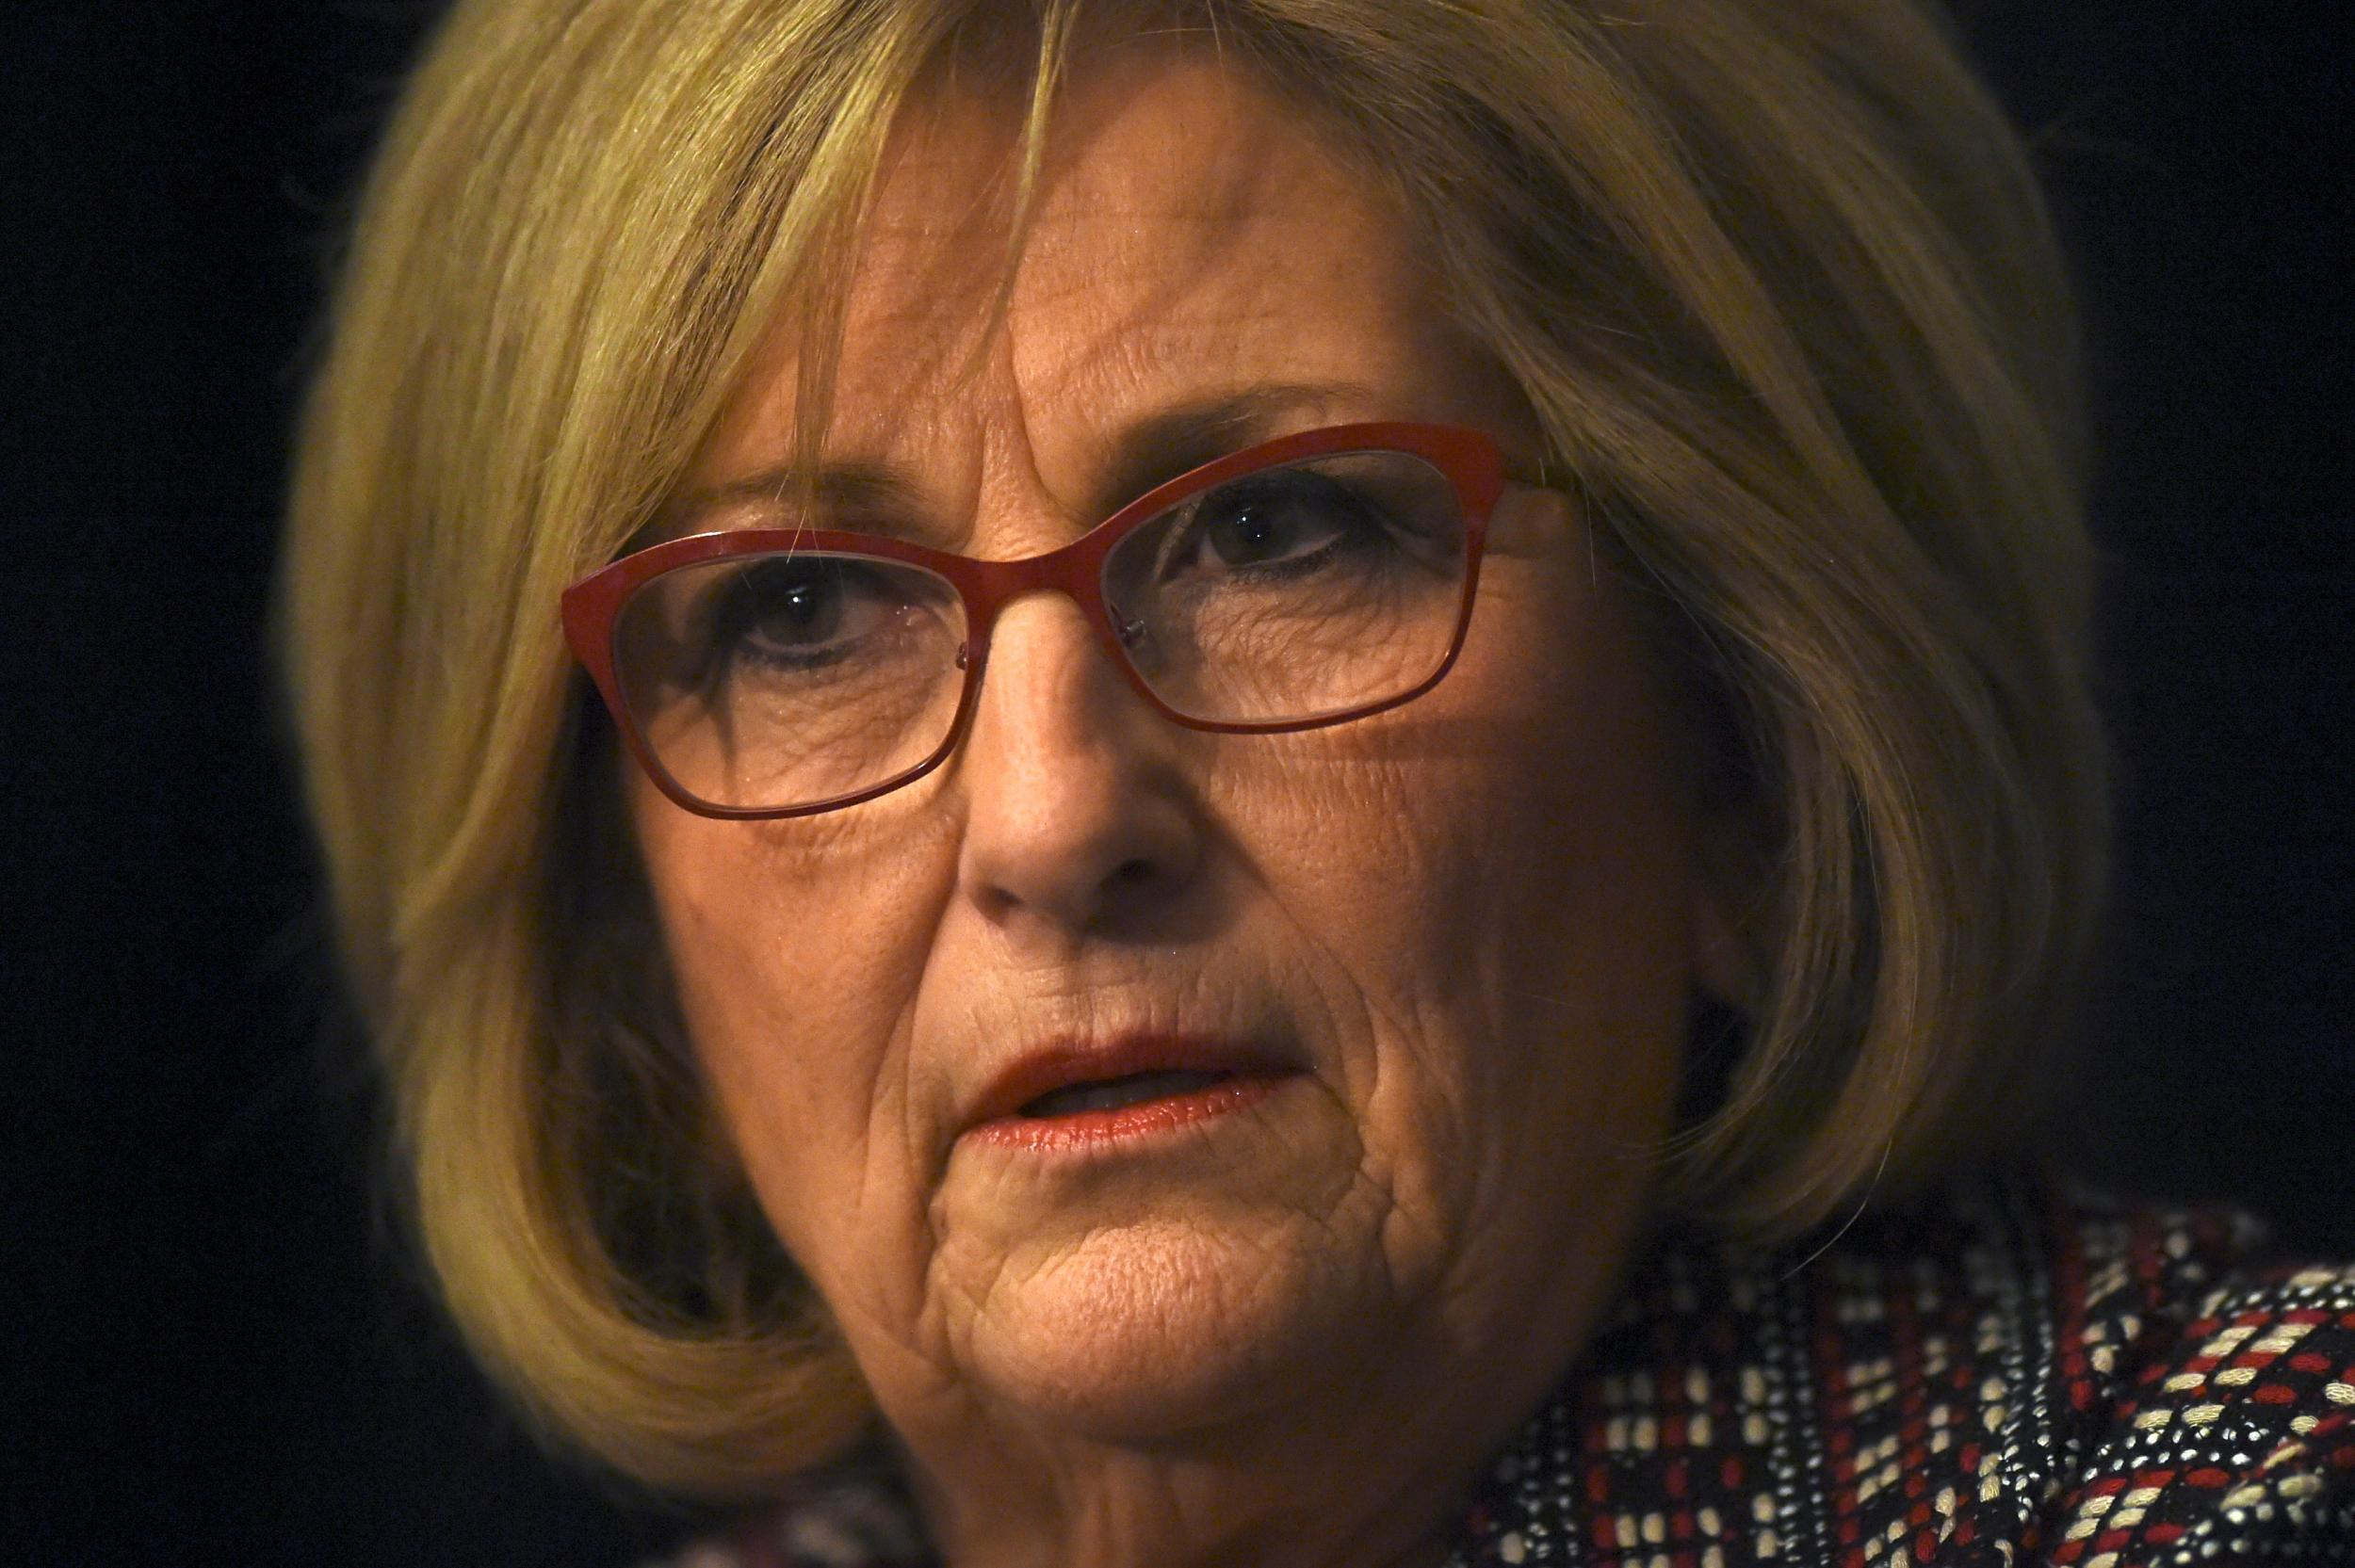 Tennessee Primary: Trump-supporting Diane Black, endorsed by Mike Pence, loses to Bill Lee in governor's race